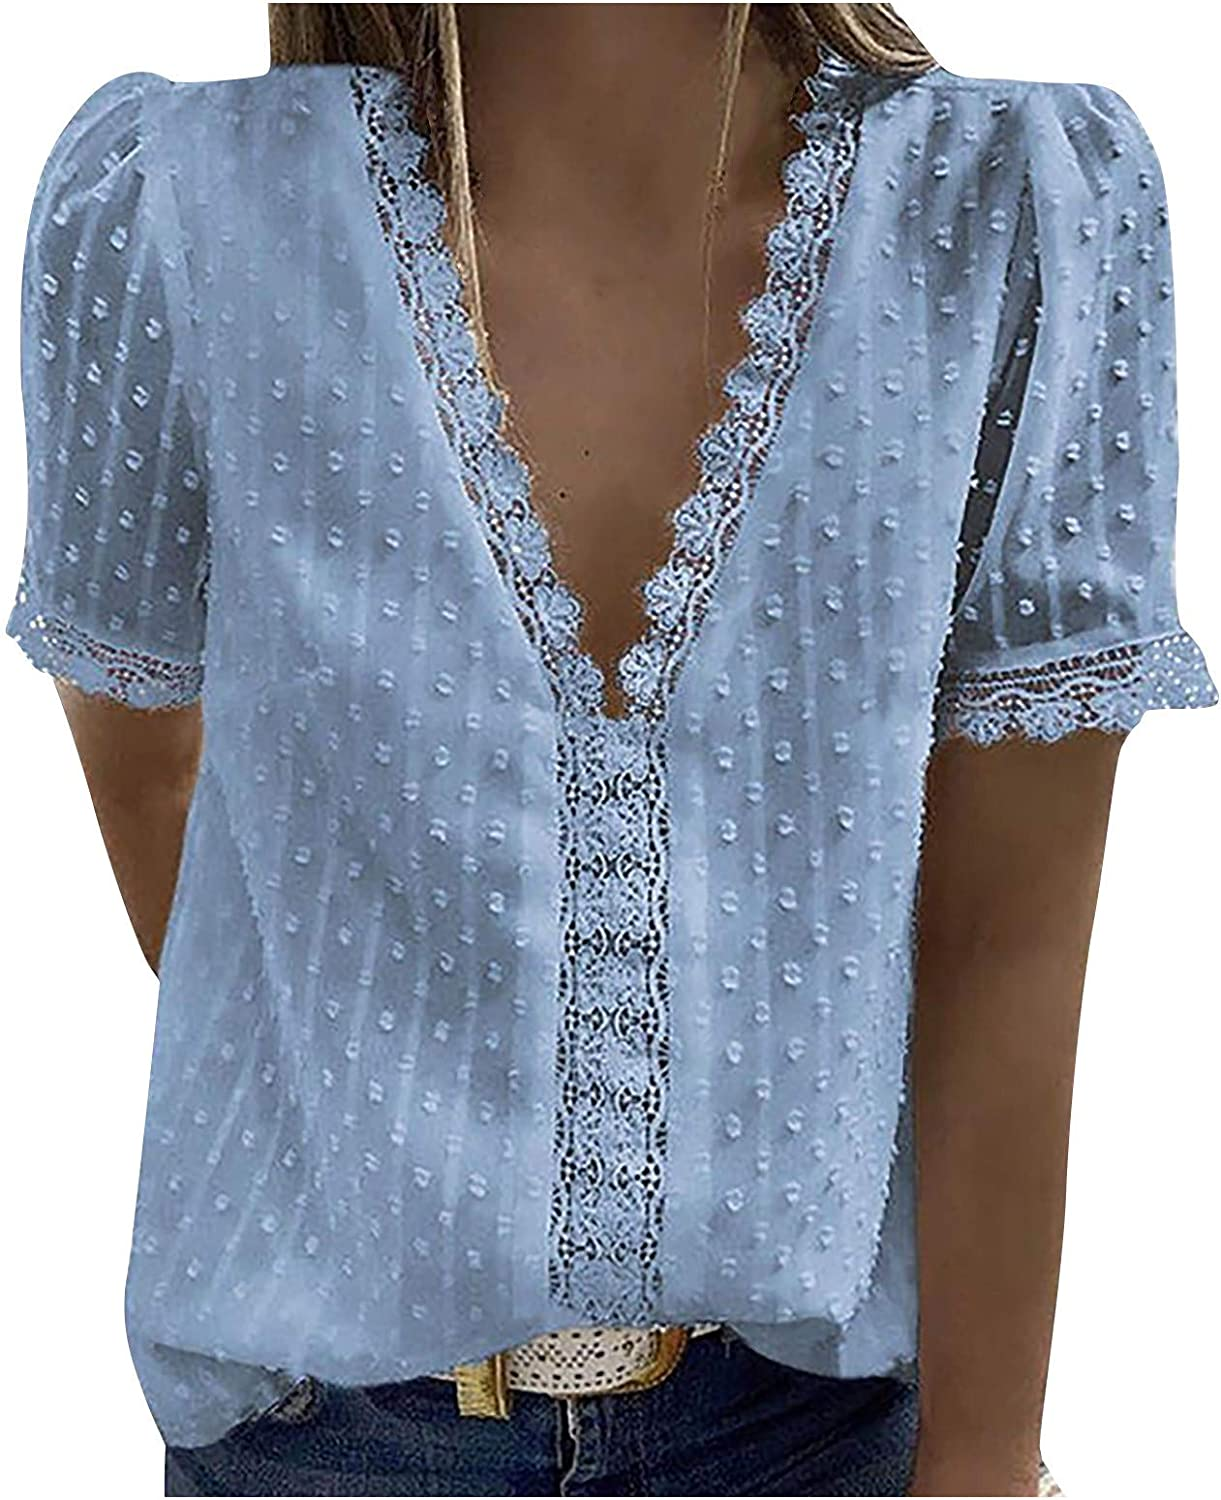 4 years warranty Lace Trim Tops for Women Breathable T-S Sleeve Short Online limited product Sexy V-Neck